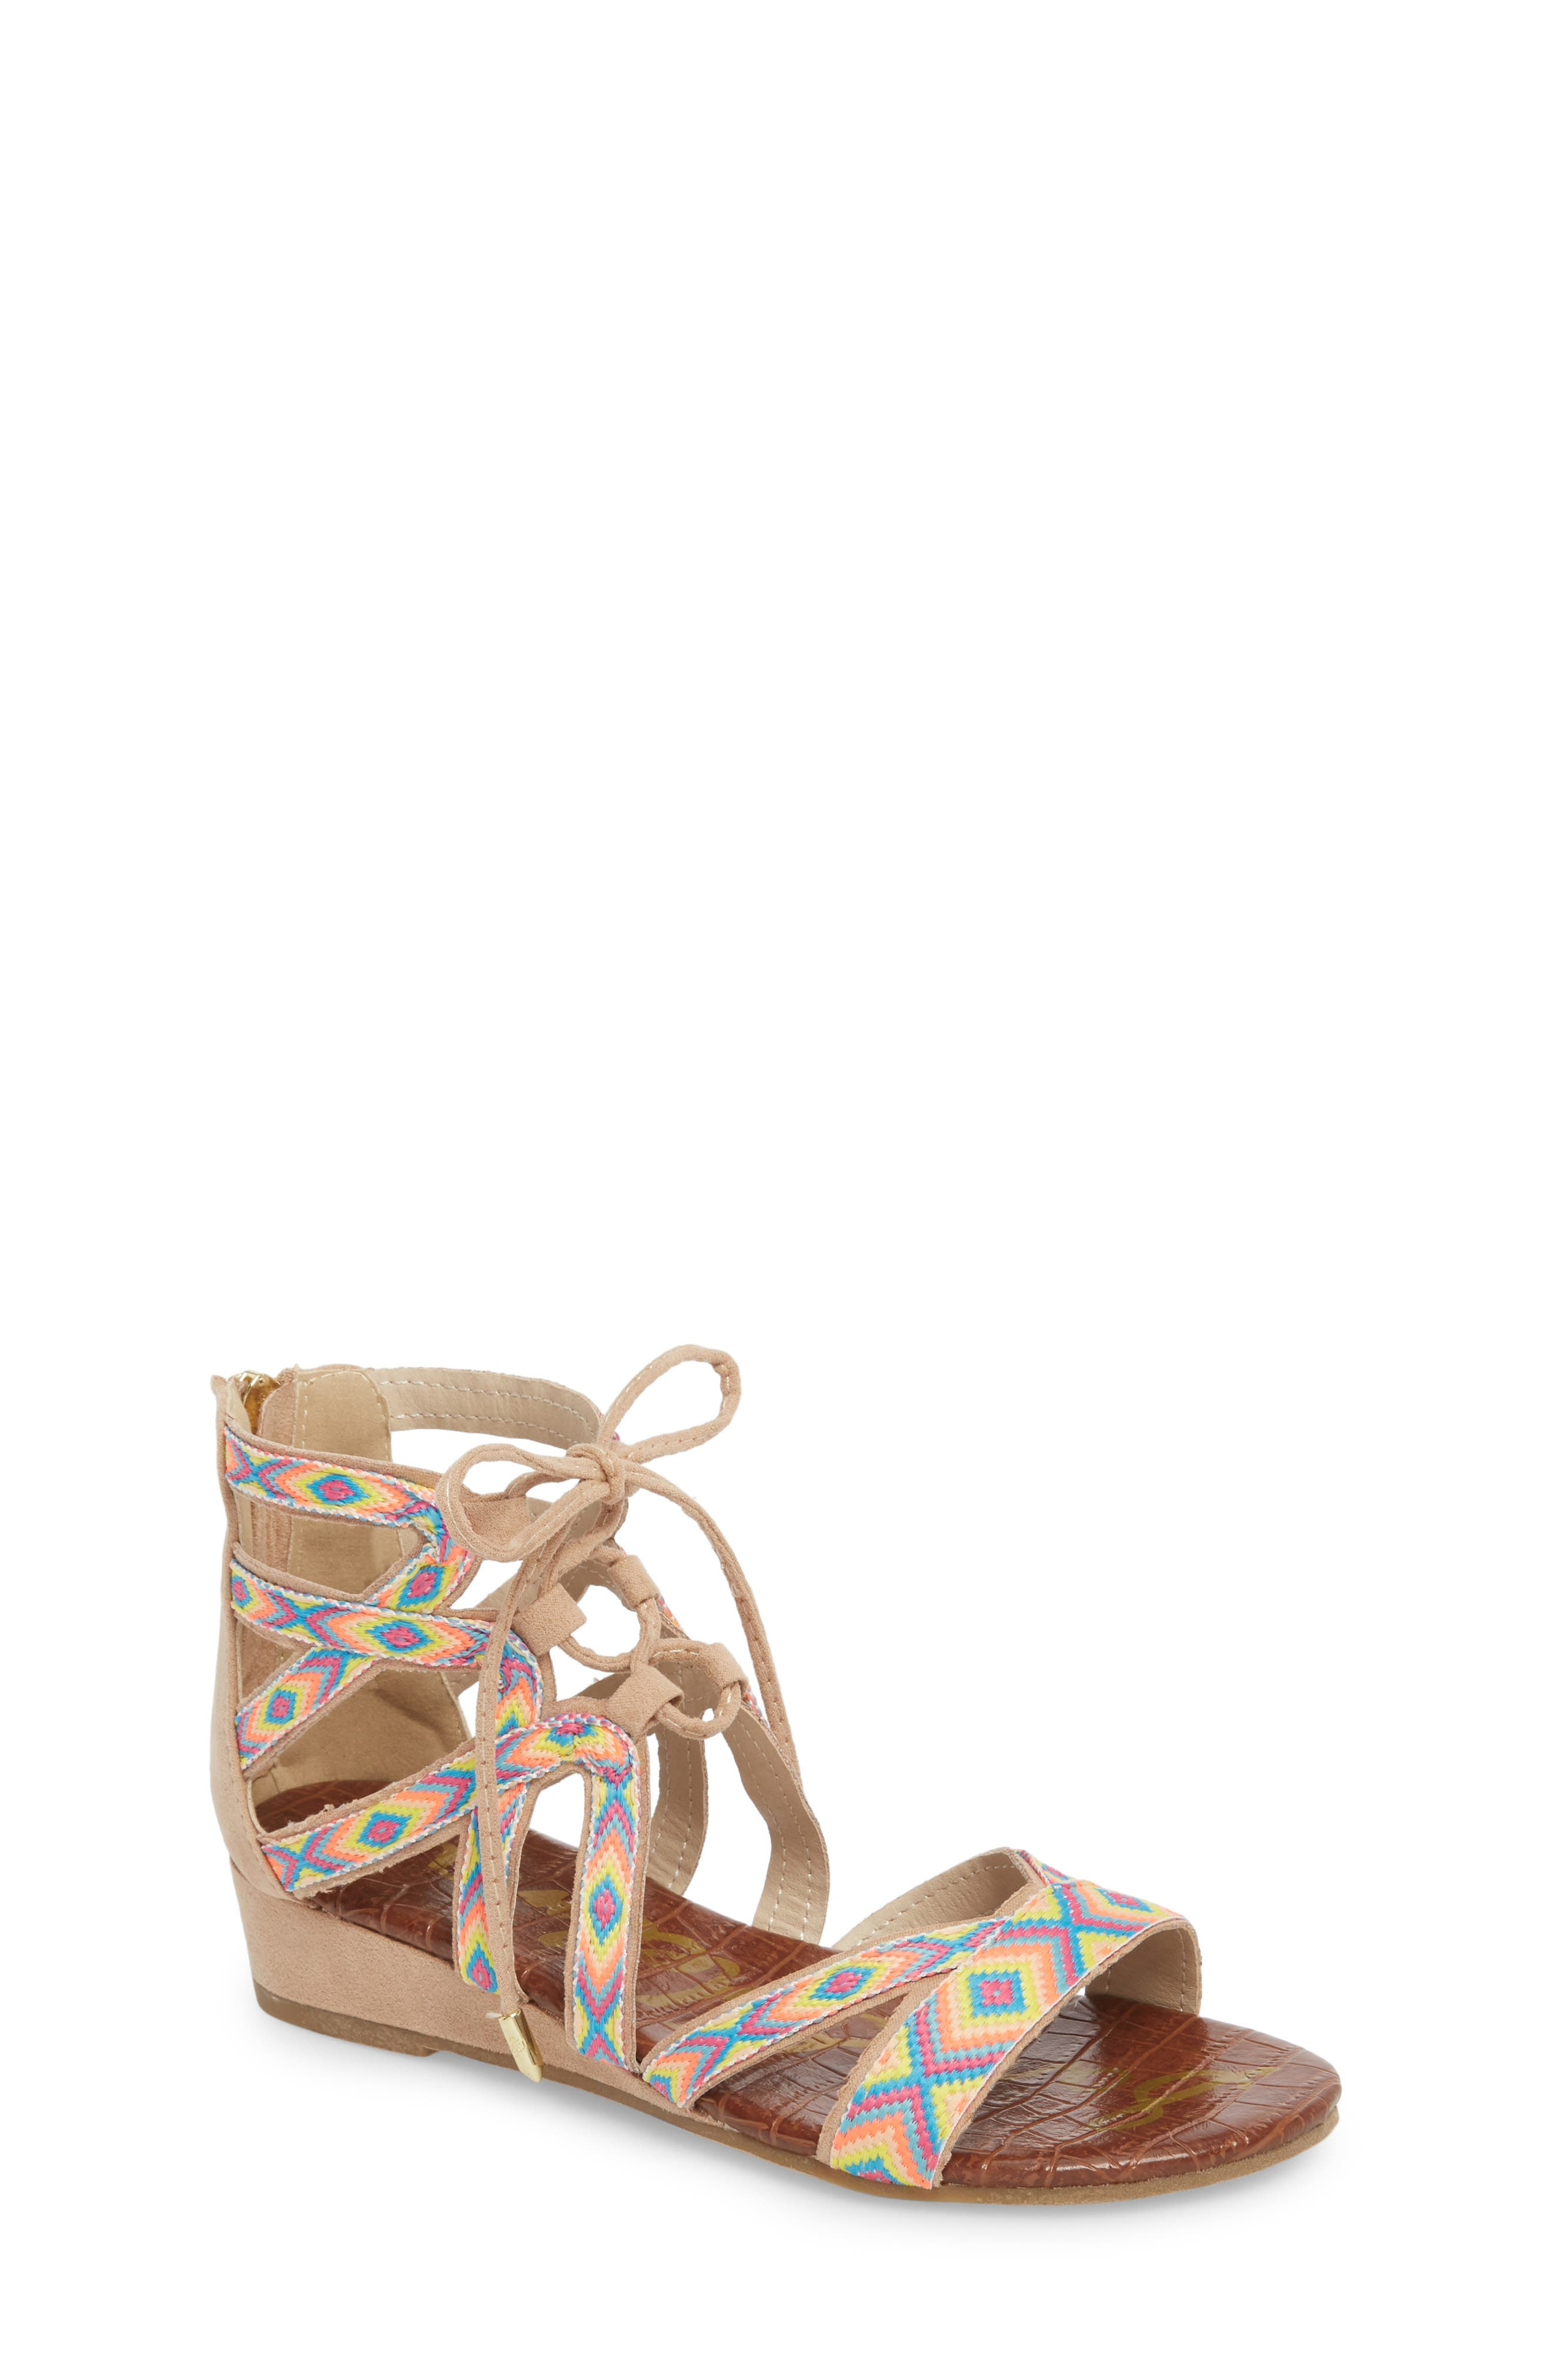 Danica Friendship Ghillie Wedge Sandal,                         Main,                         color, 281